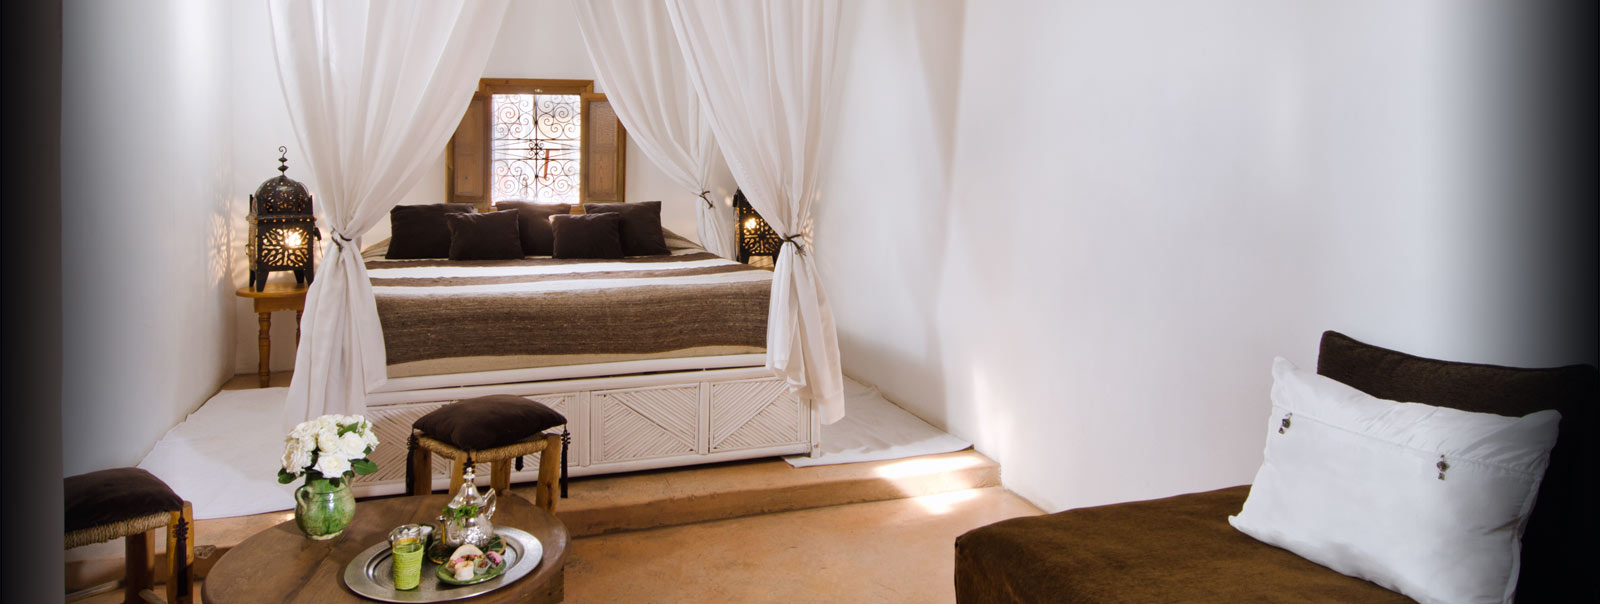 riad pas cher marrakech r server riad vert marrakech. Black Bedroom Furniture Sets. Home Design Ideas